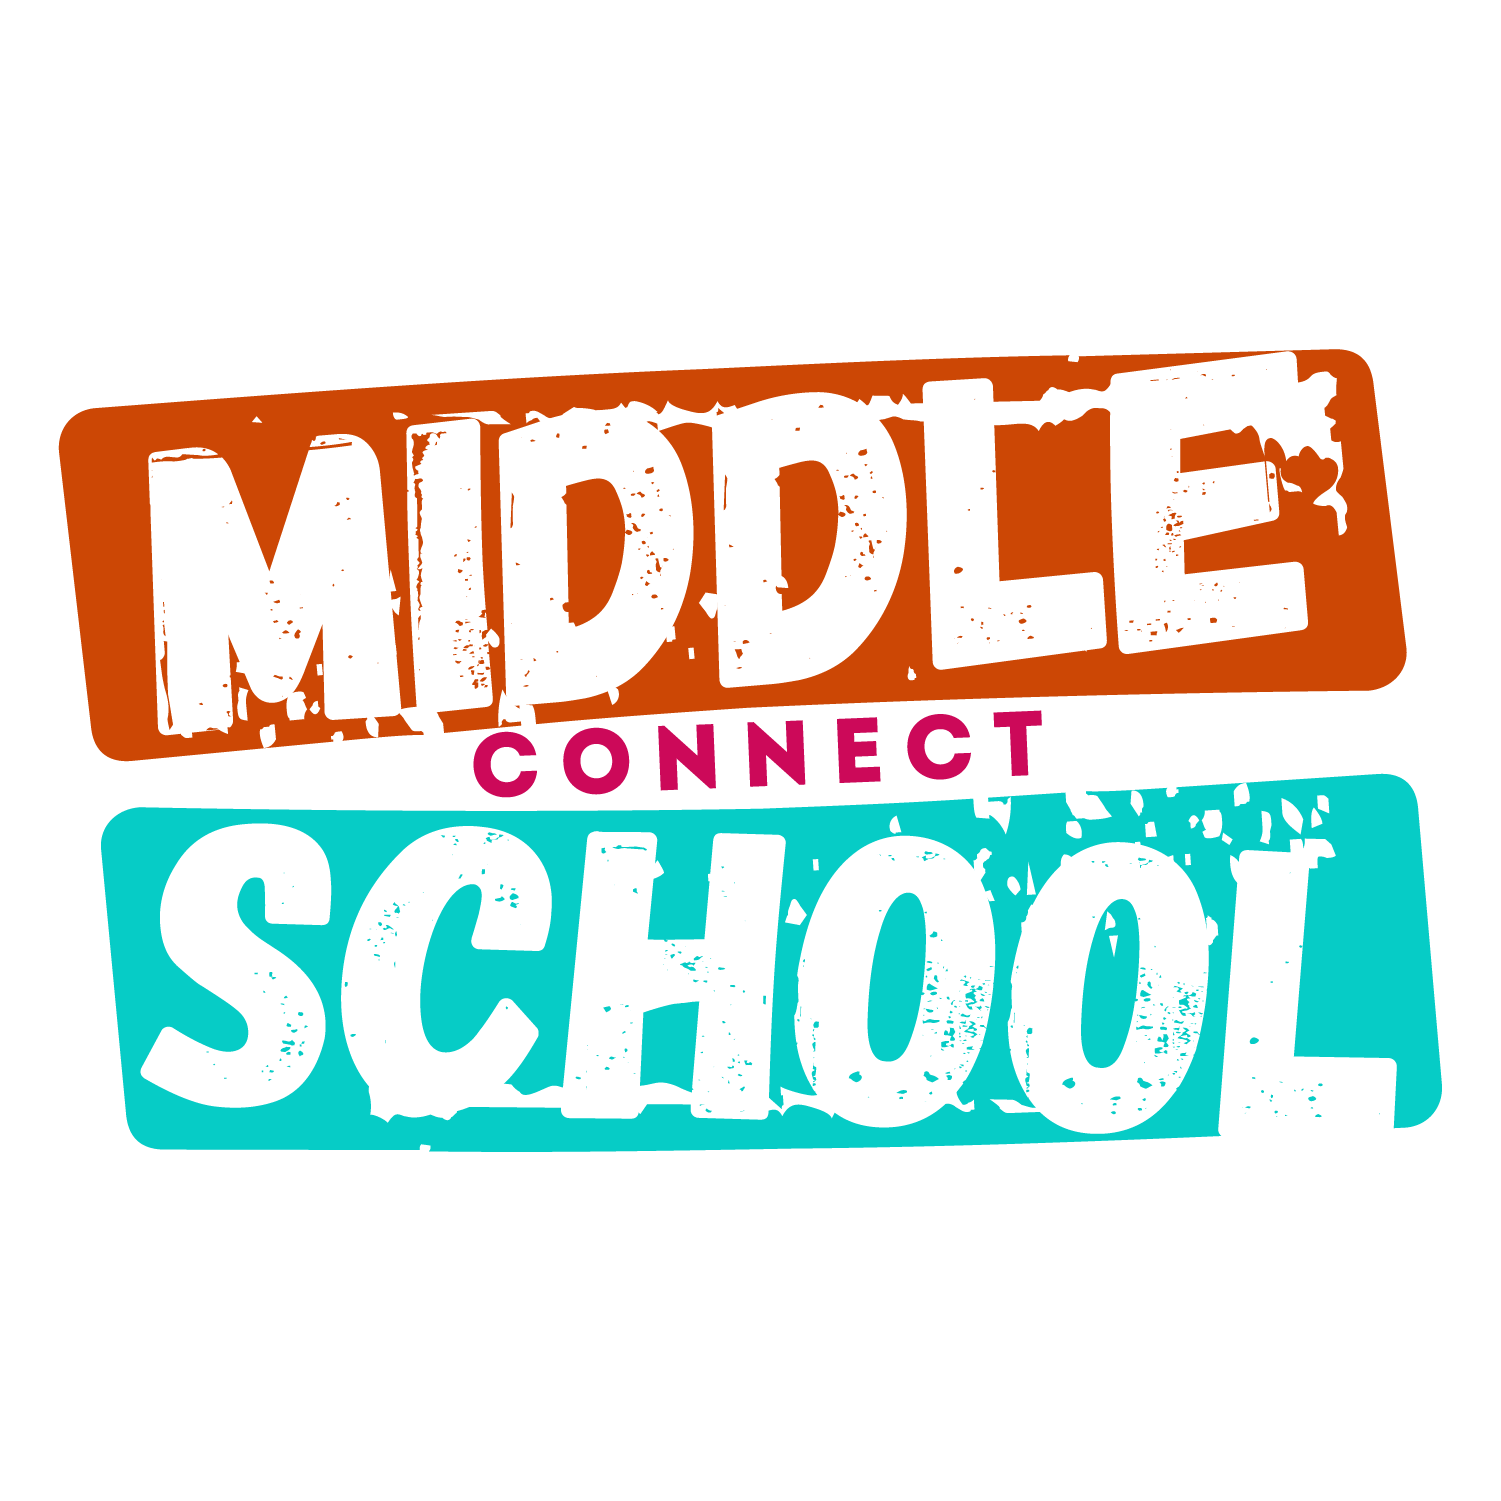 Connect Middle School - It's fun, energetic, and most importantly, it's discipleship-oriented. We believe that personal growth should be celebrated and that church should be enjoyable AND equipping. Our middle school ministry is made up of students who are between 5th through 8th grades.Middle School meets during our 11:00 AM services at our Cherry Hill campus in our Youth Room, located off of the main corridor.